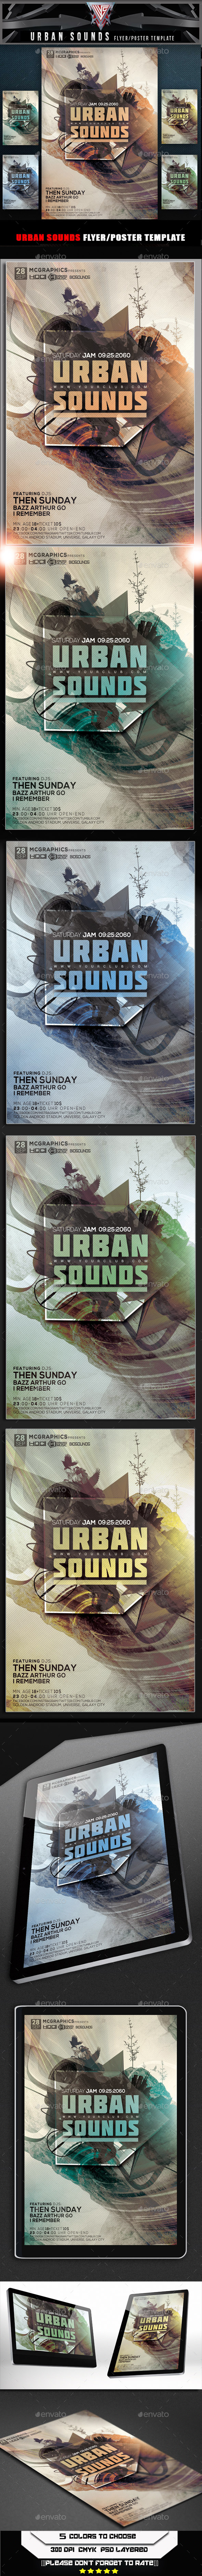 Urban Sounds Flyer Template - Flyers Print Templates